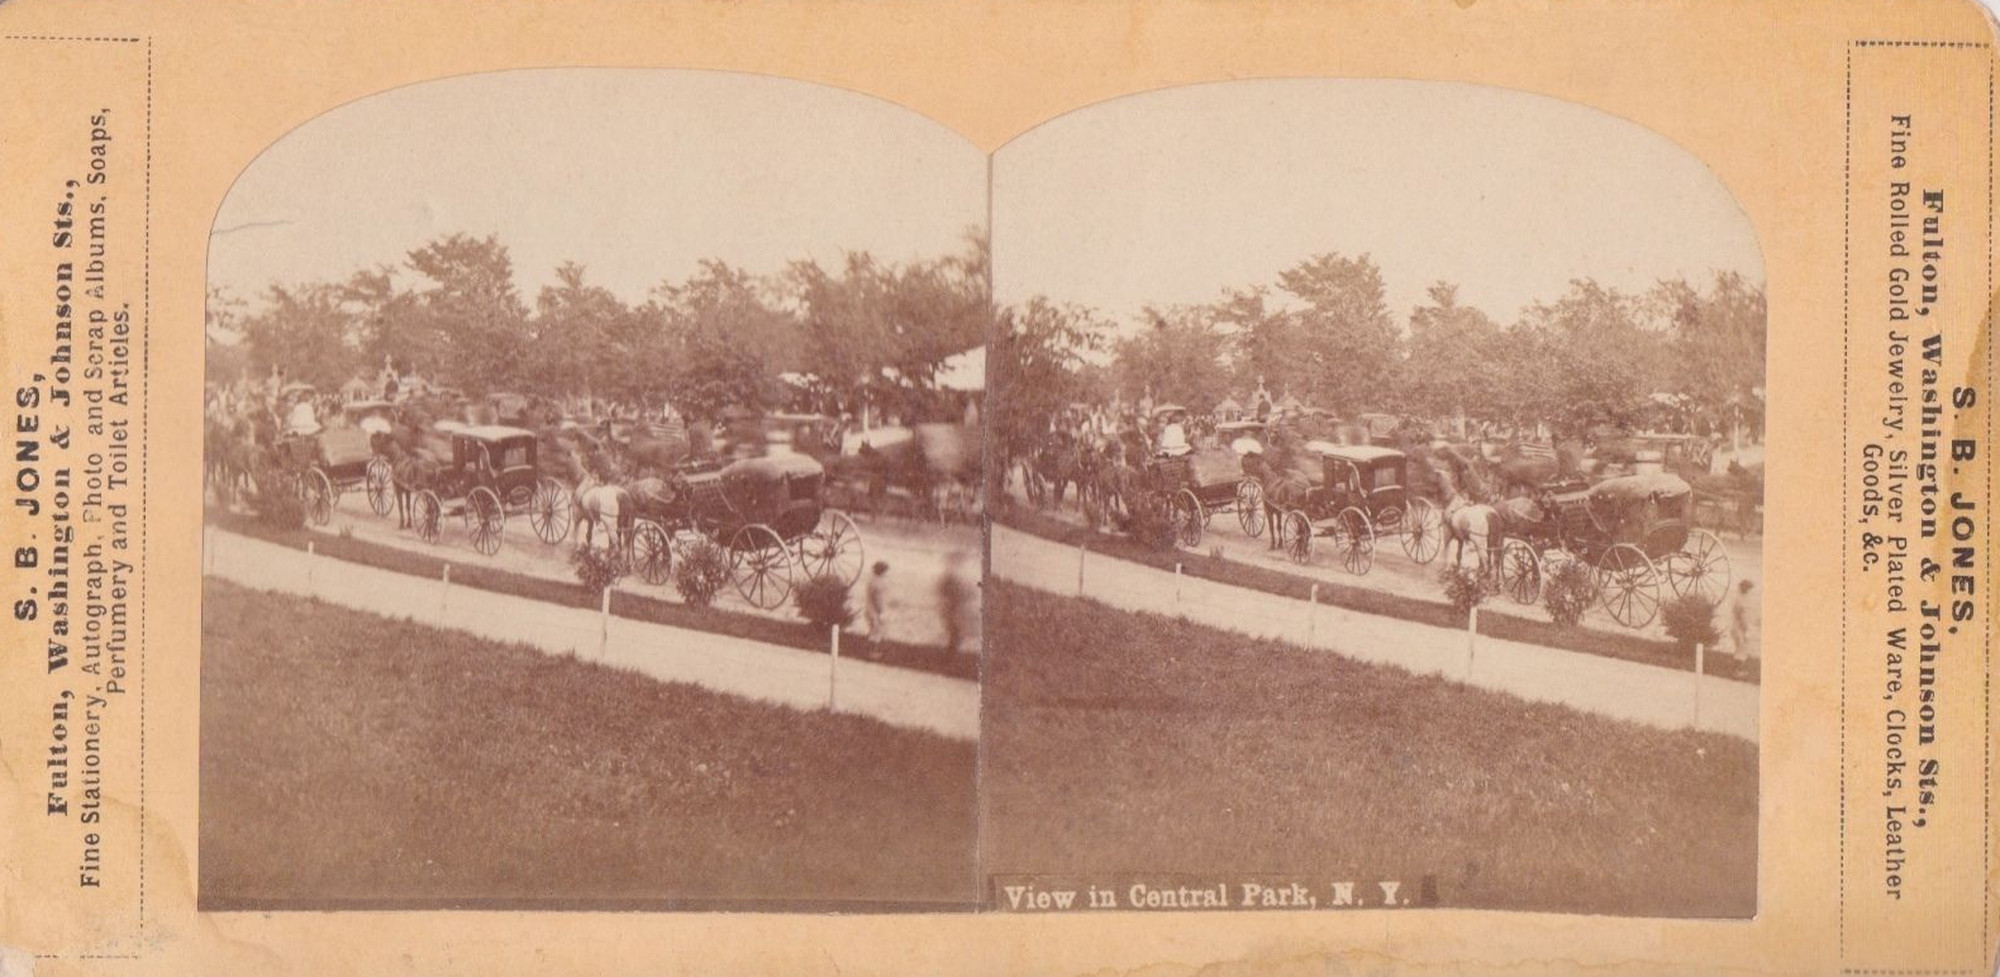 1896-Central-Park-View-of-many-horse-drawn-vehicles-on-drive